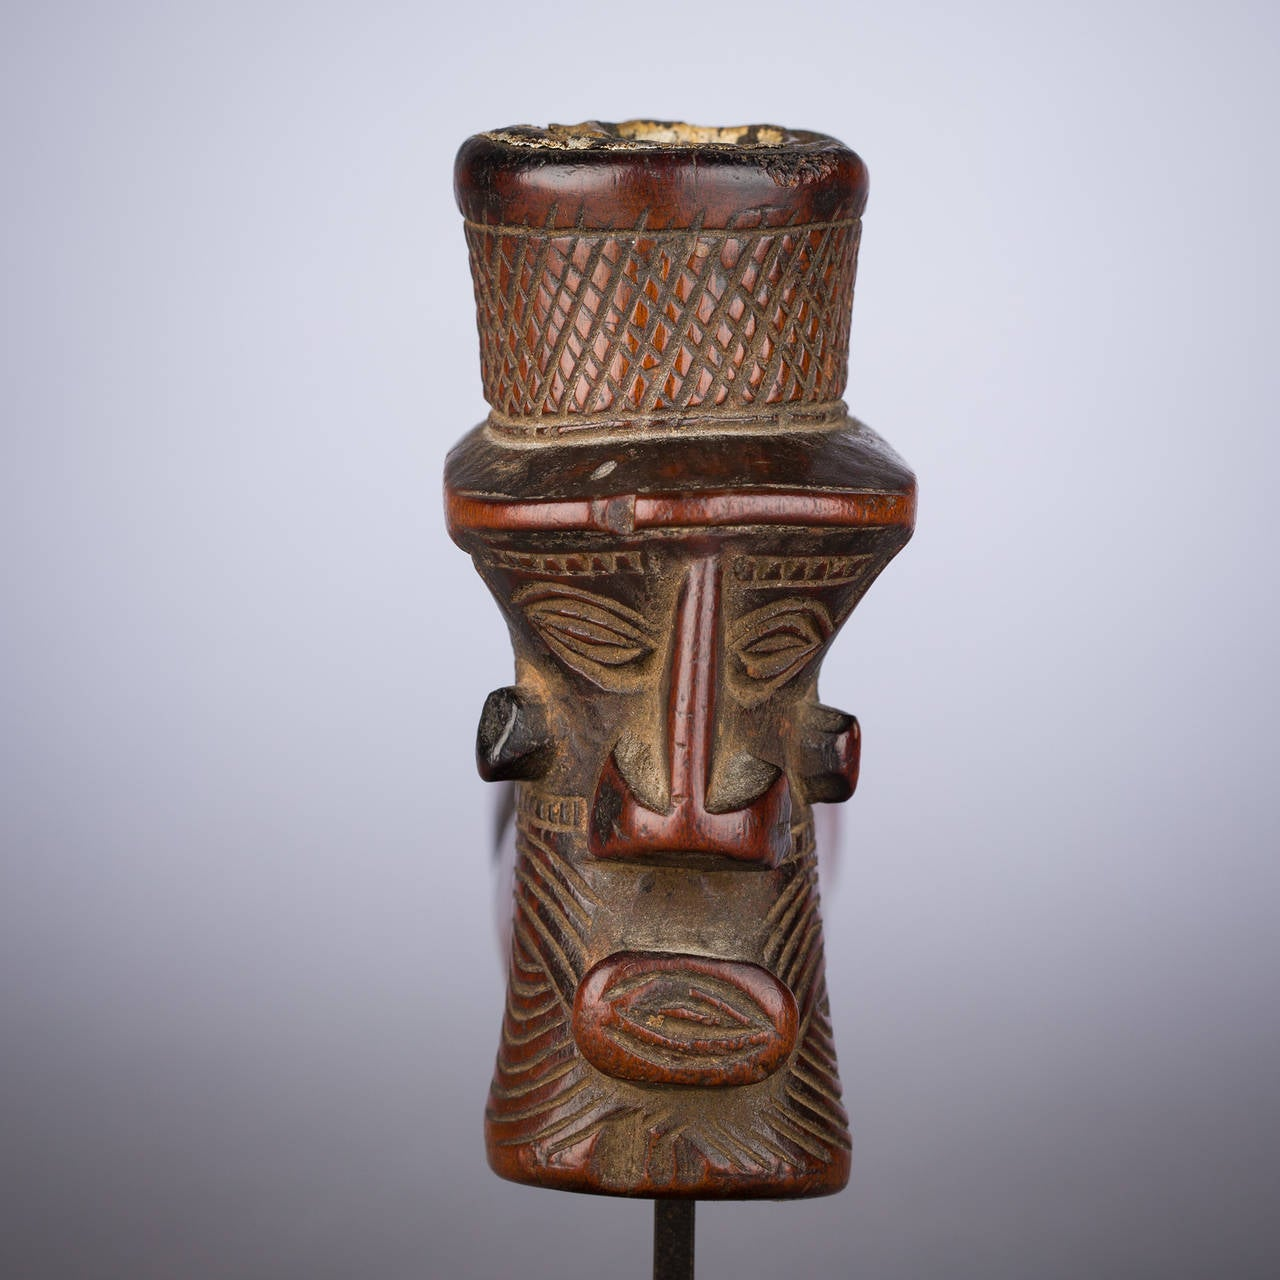 A beautiful interplay of raised planes and clustered incisions structures this impressive cephalomorphic Congolese pipe. Flowing line work textures the head, which joins with the bridge of the robust nose to present a strong, hatchet-like profile.